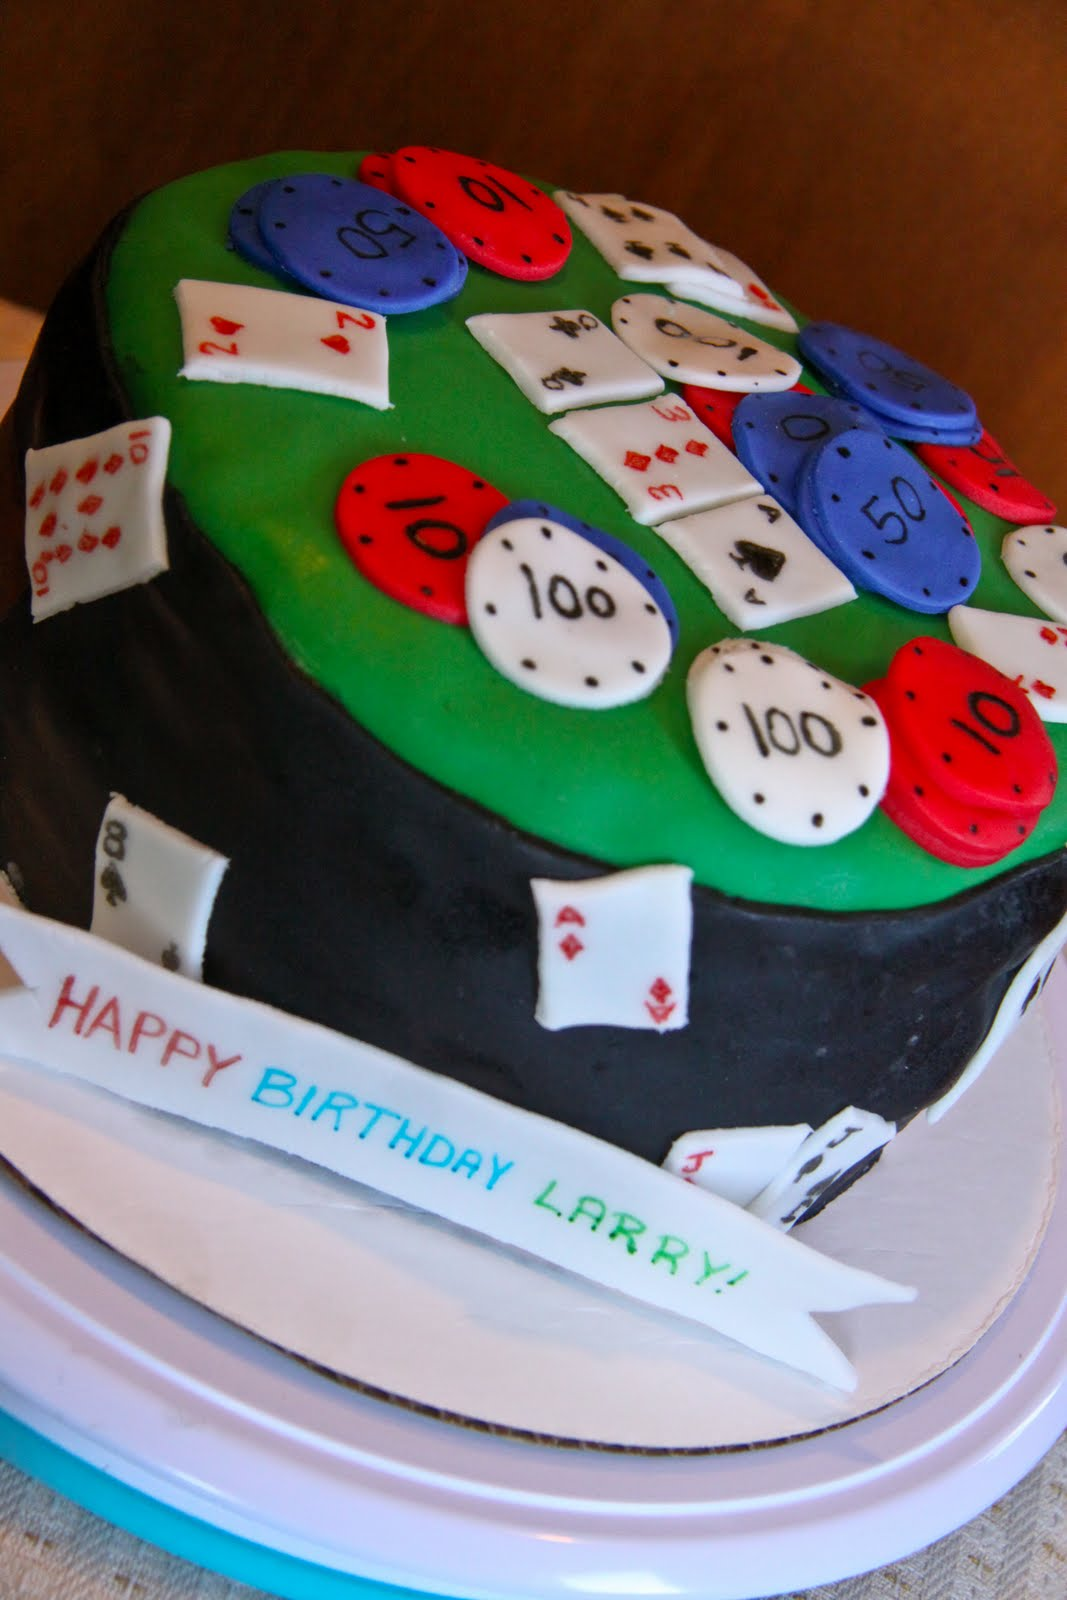 Cakes By Krista Sidhu Happy Birthday Grandpa Poker Table Cake